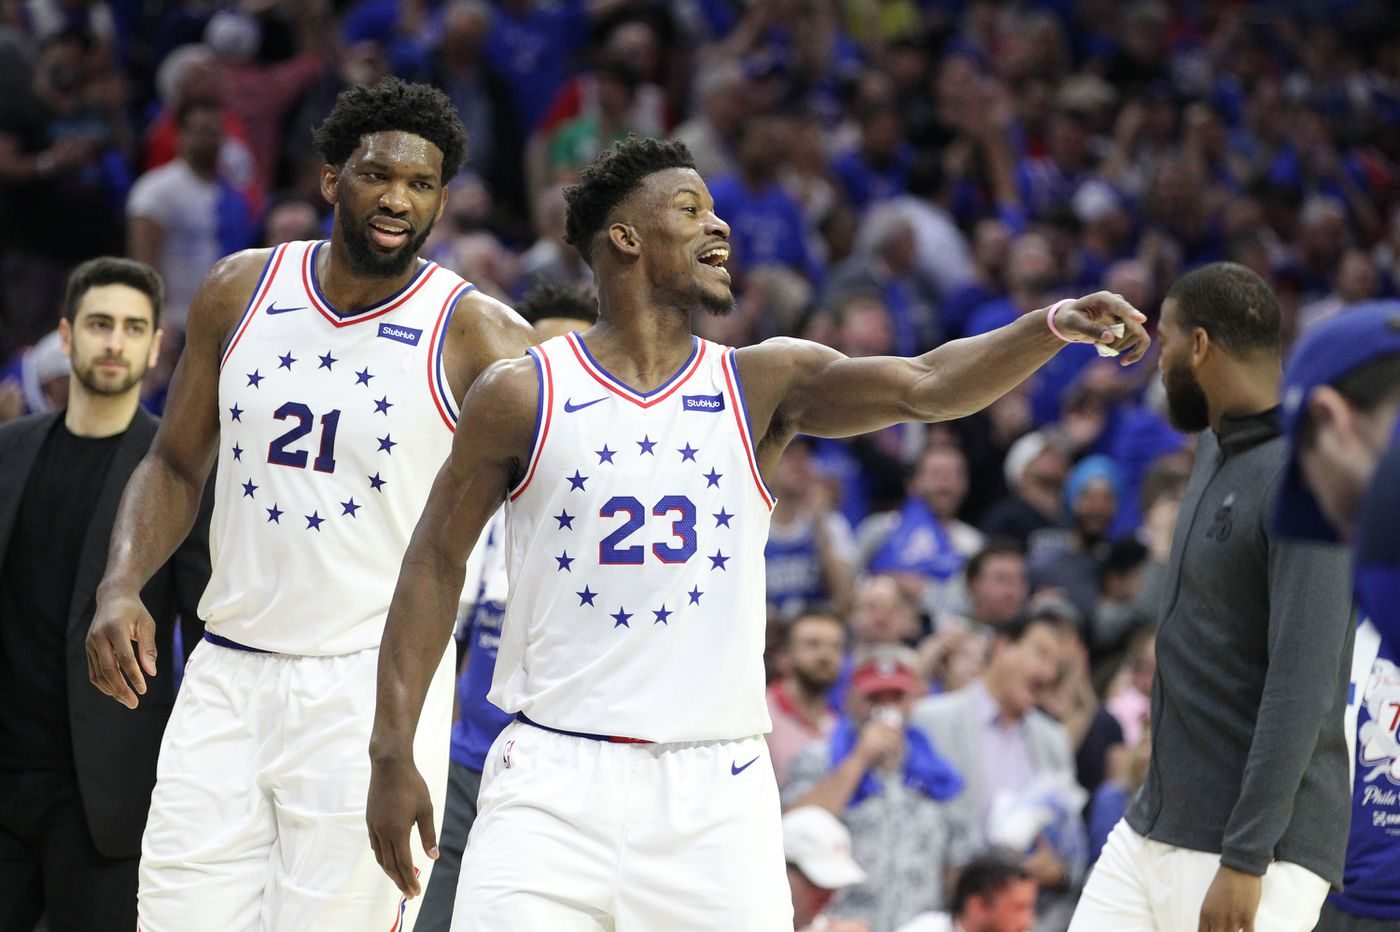 f60e94d1e09 NBA playoffs  Sixers  Joel Embiid and Jimmy Butler thriving in  pick-and-roll against Raptors